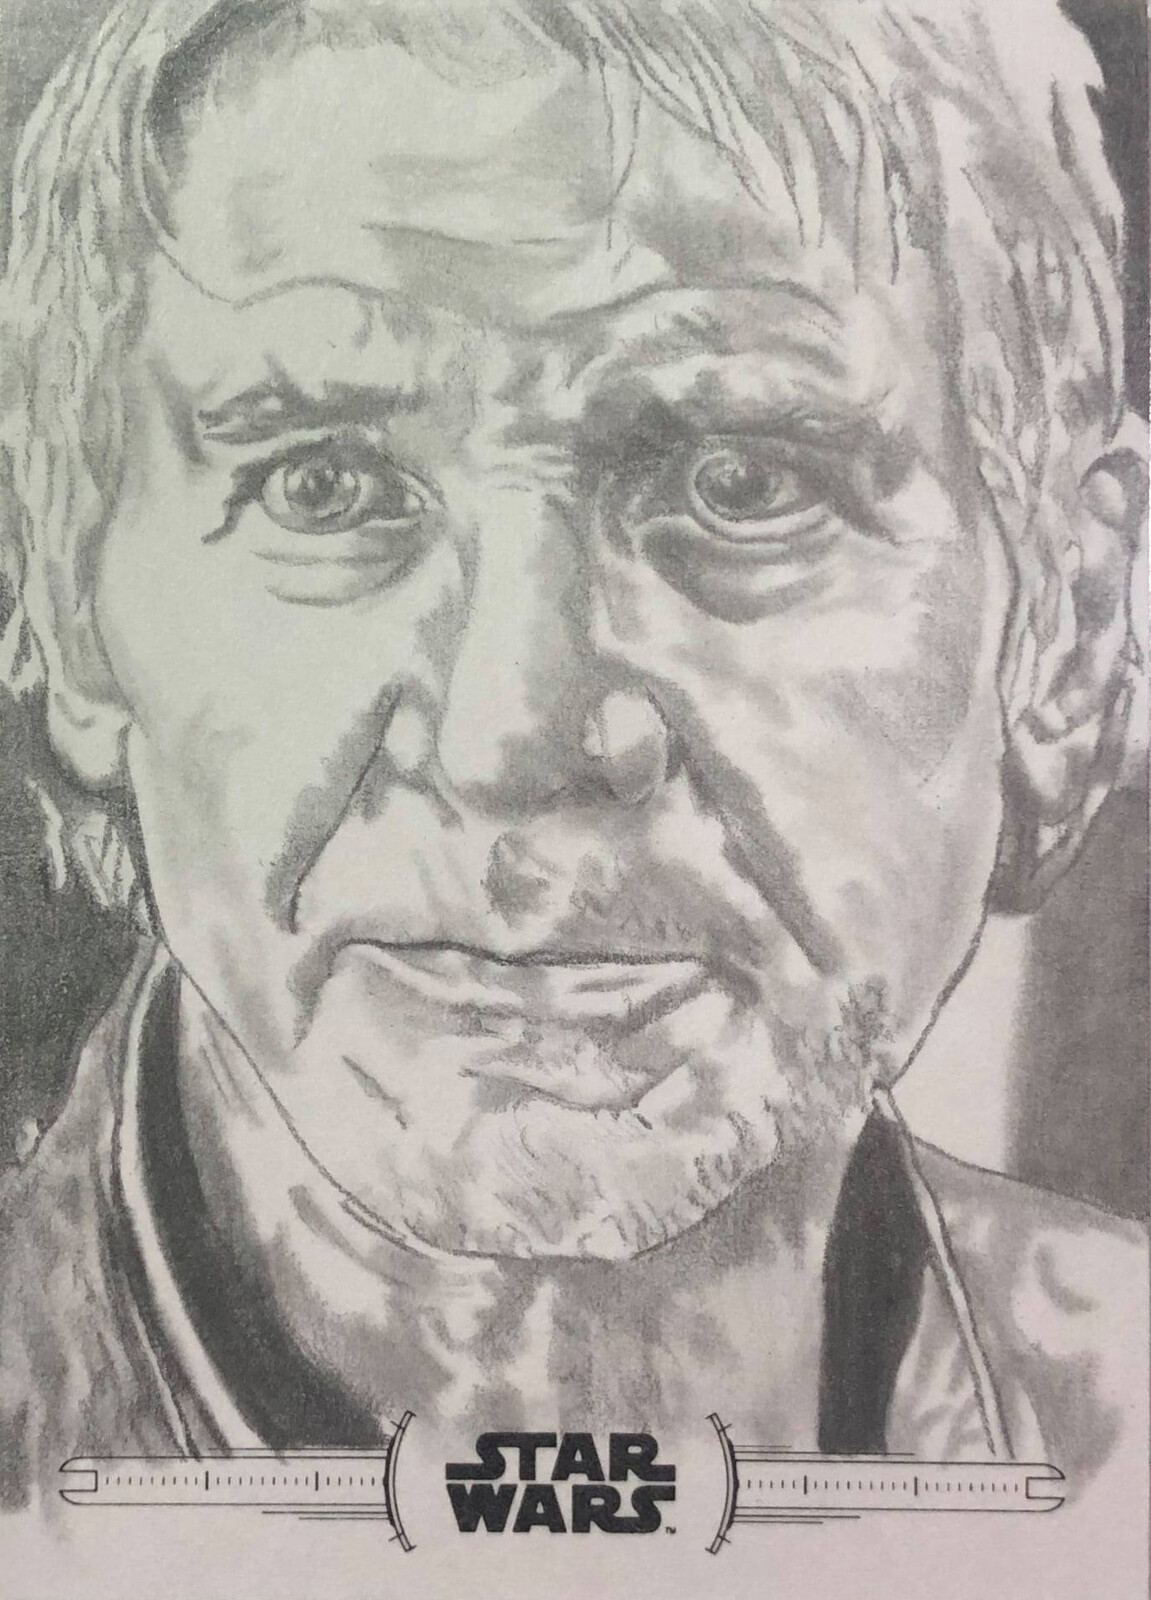 Han Solo from The Force Awakens